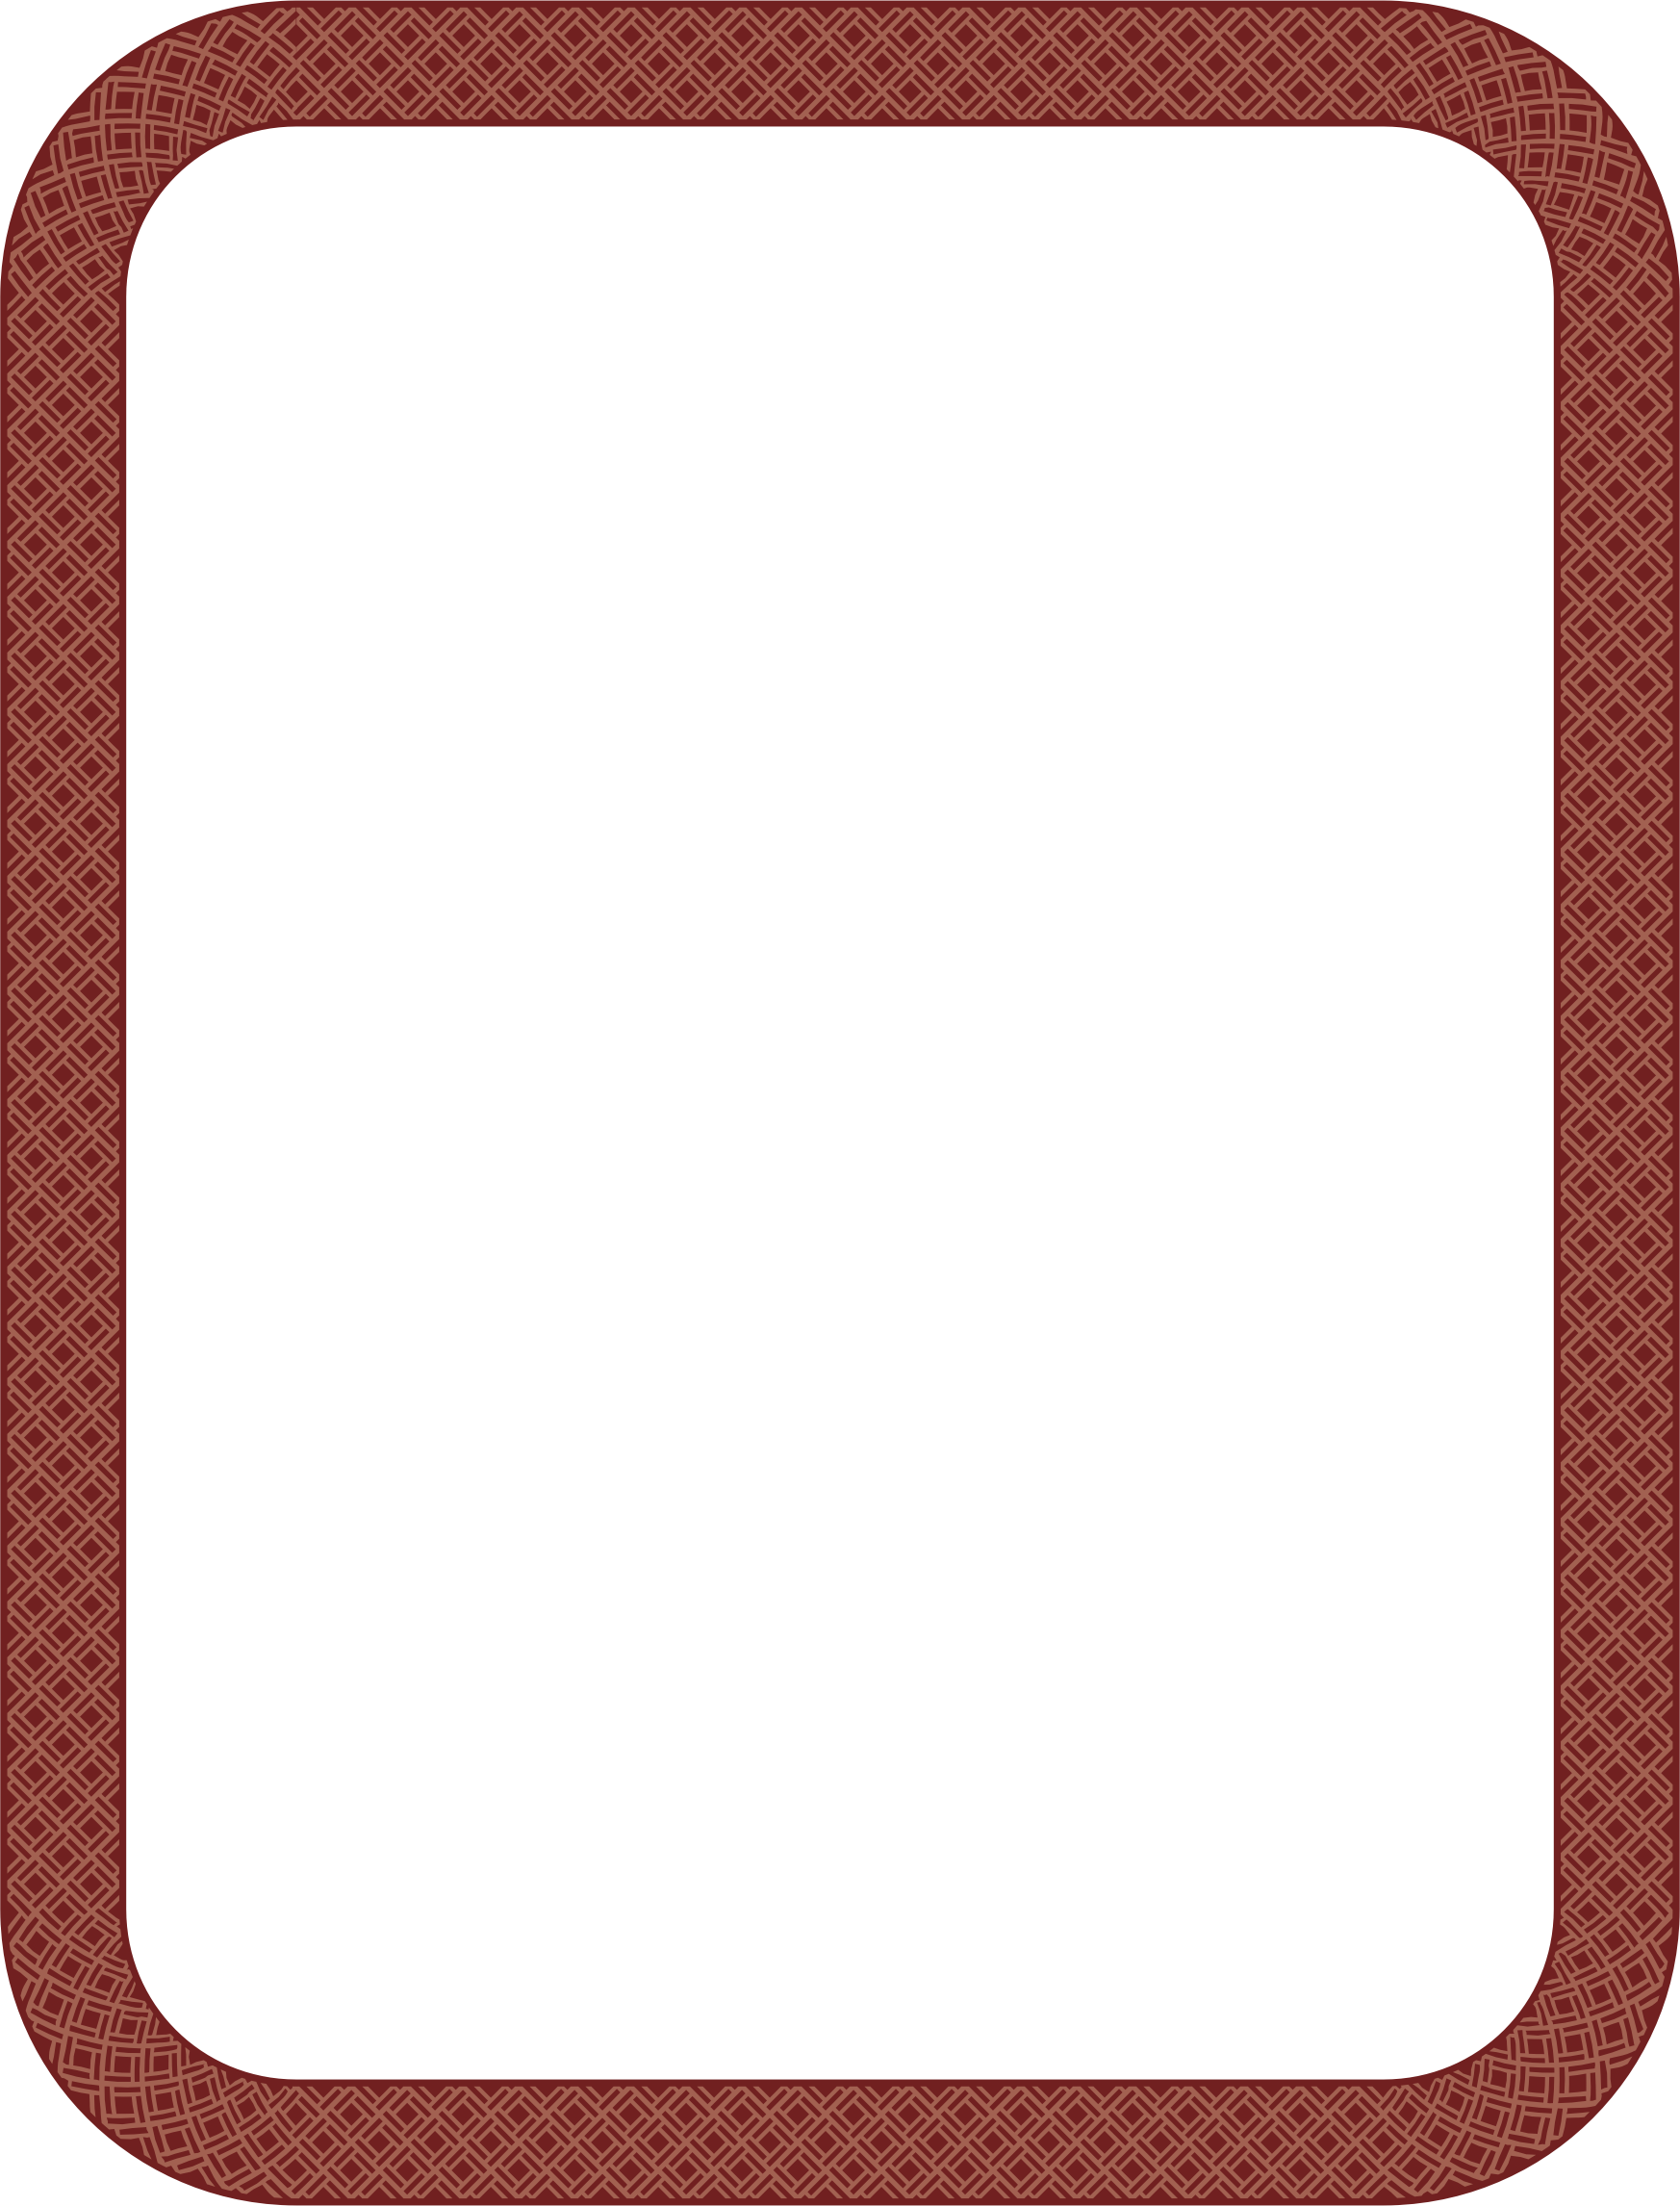 Wicker Border 4 (US size) by Arvin61r58